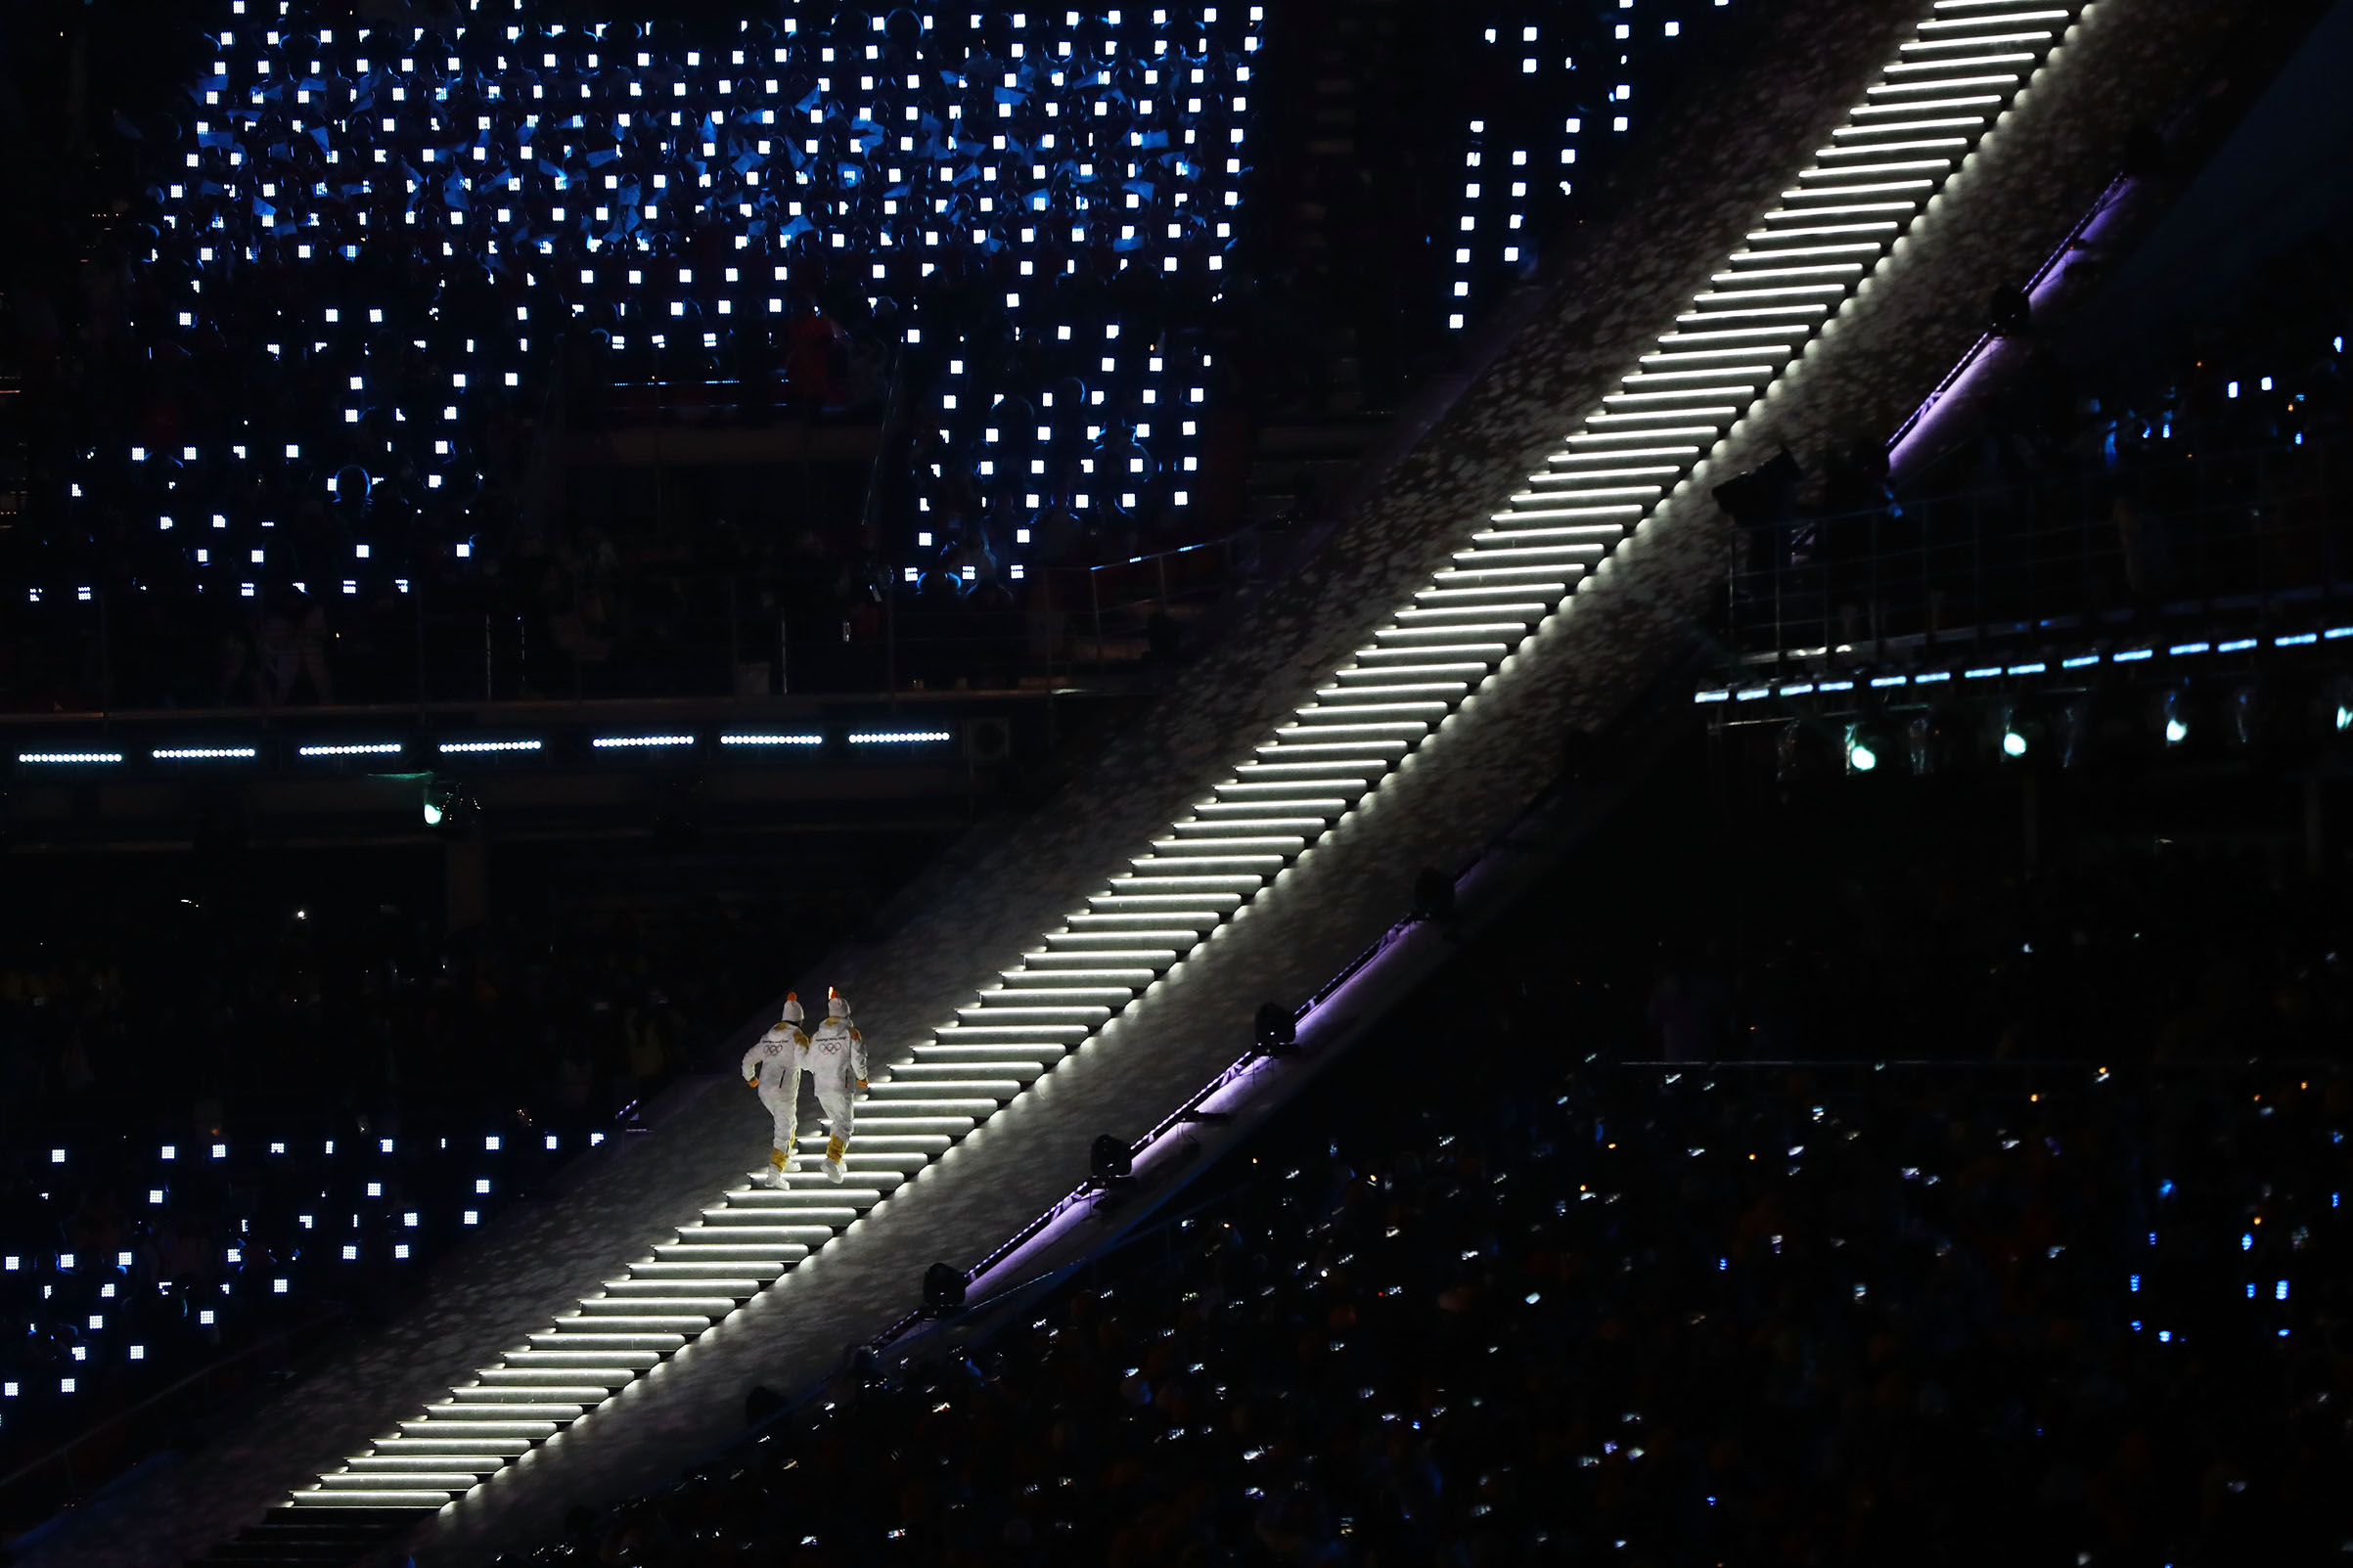 Torchbearer with the Olympic Flame during the Opening Ceremony of the PyeongChang 2018 Winter Olympic Games.